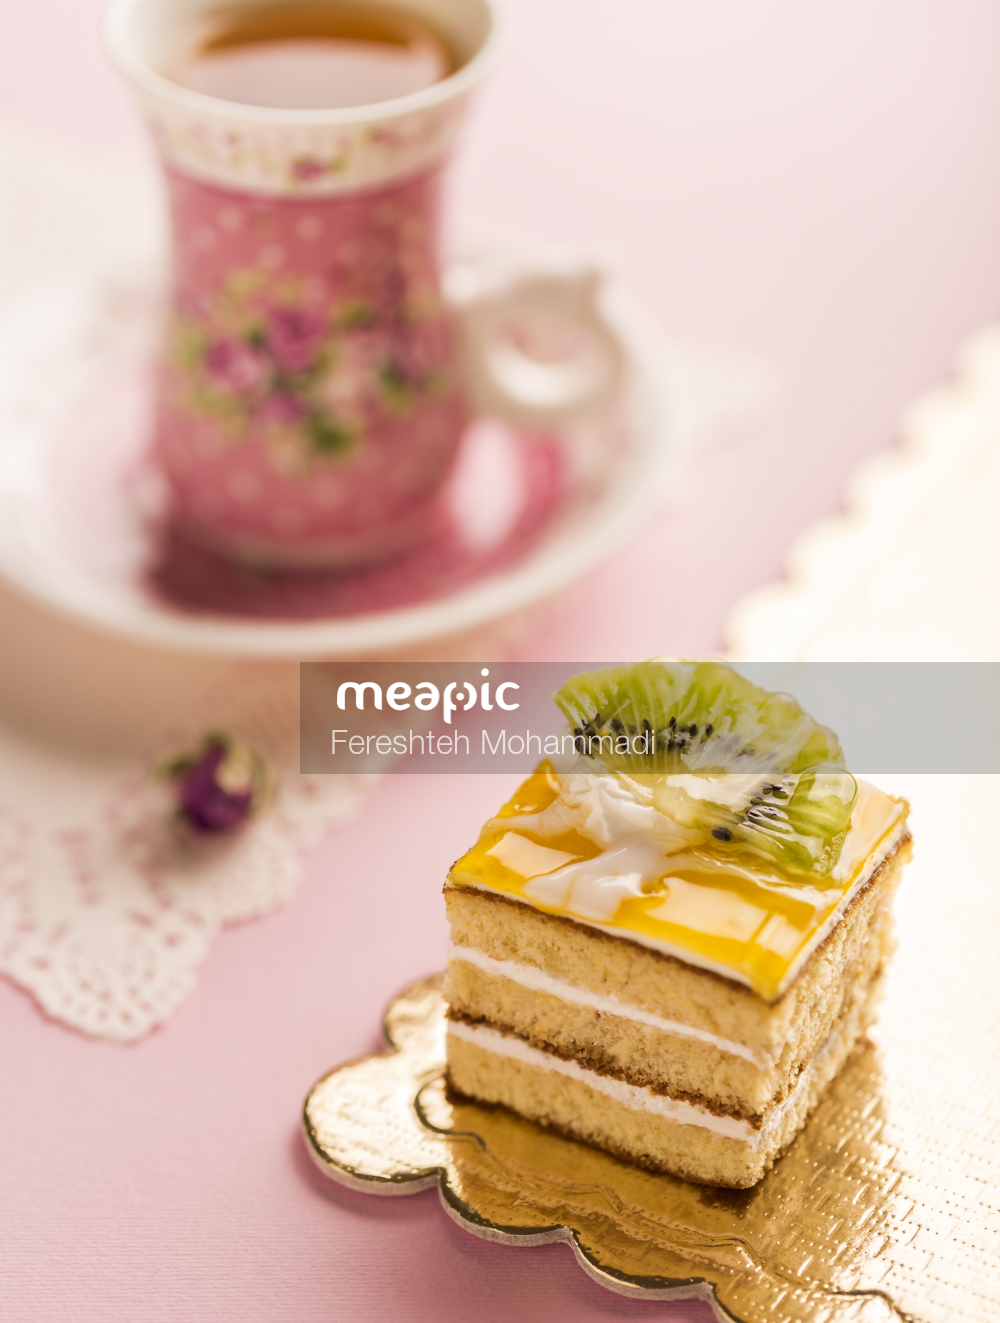 Piece Of Cake And A Cup Of Coffee Stock Photo · Meapic